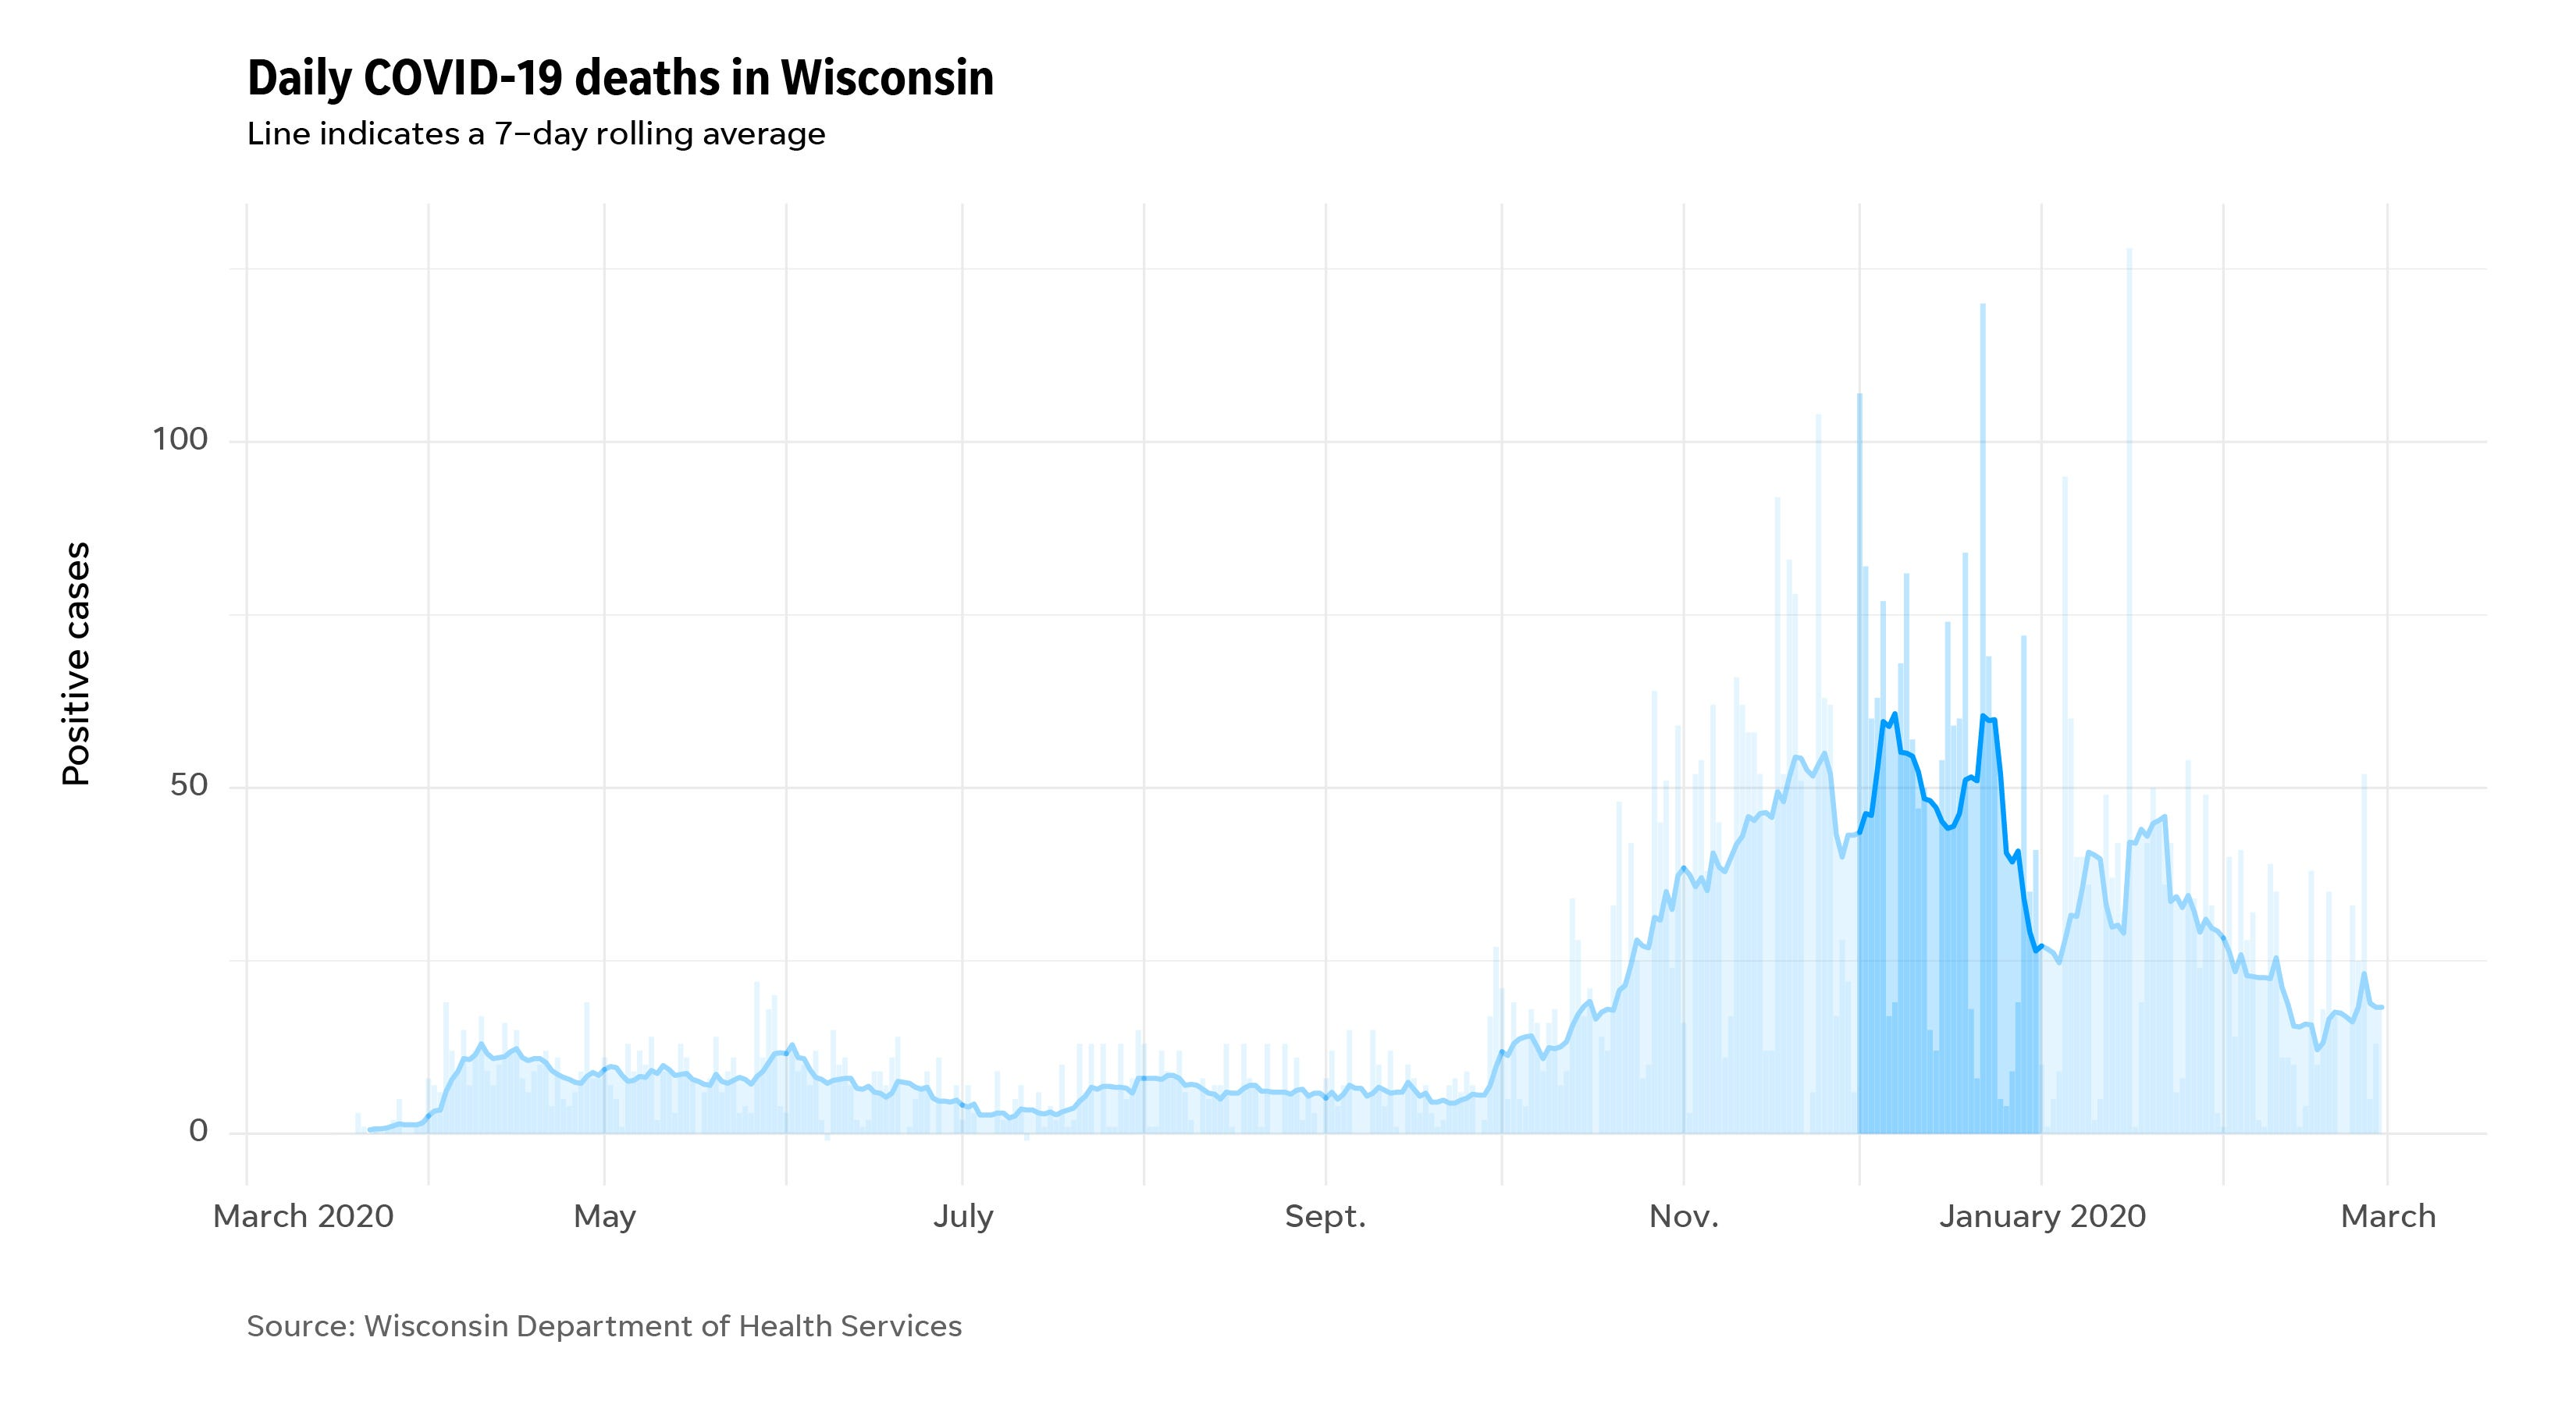 Deaths in Wisconsin from COVID-19 during the pandemic highlighting the month of December.